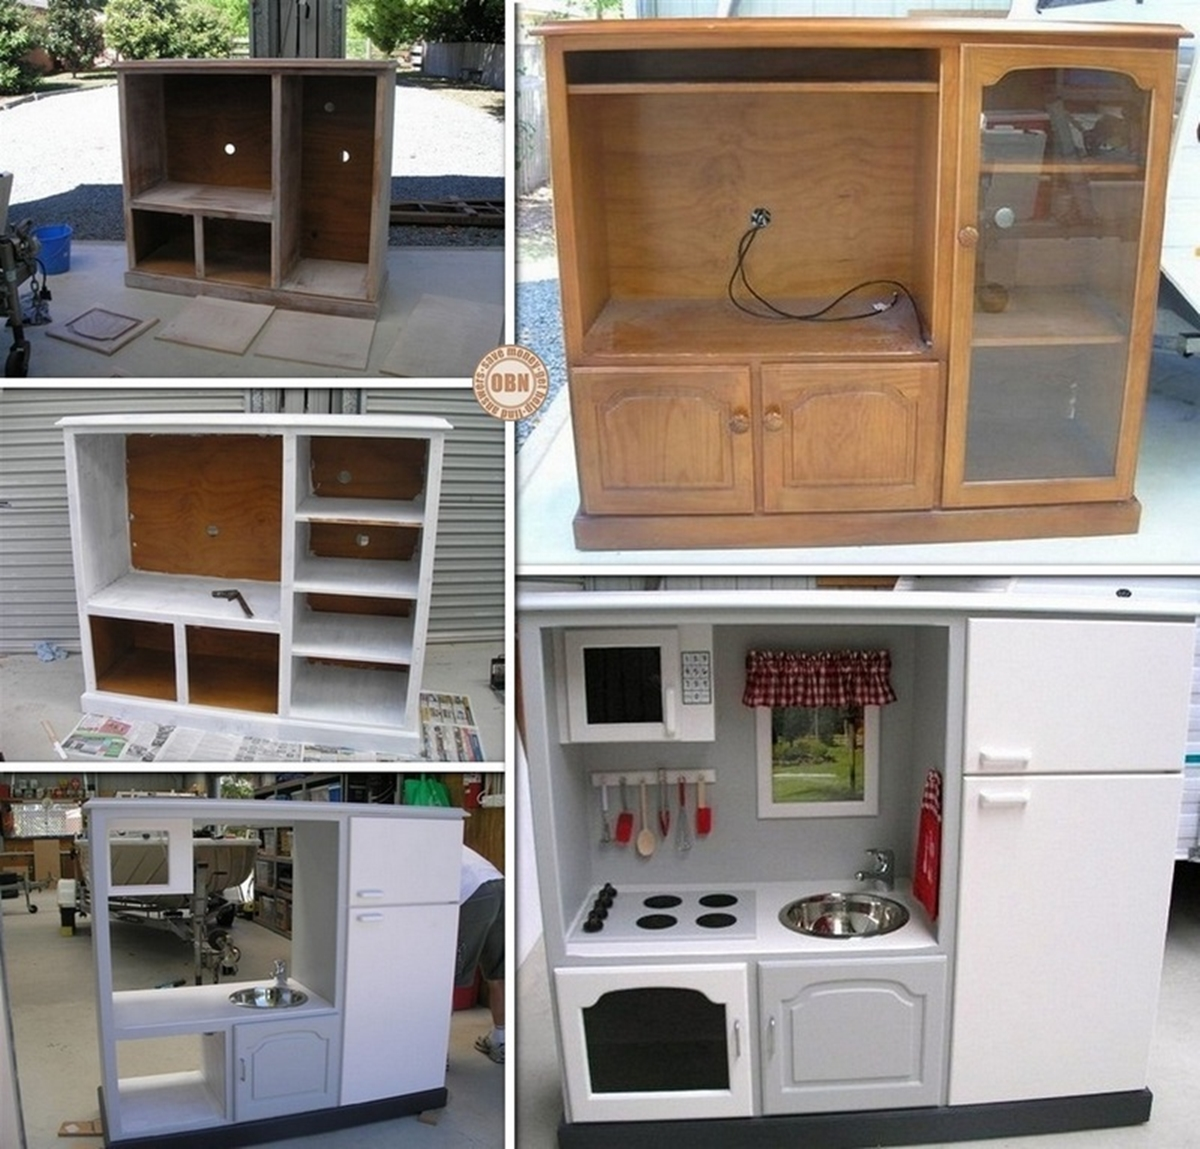 Wonderful diy play kitchen from tv cabinets solutioingenieria Image collections